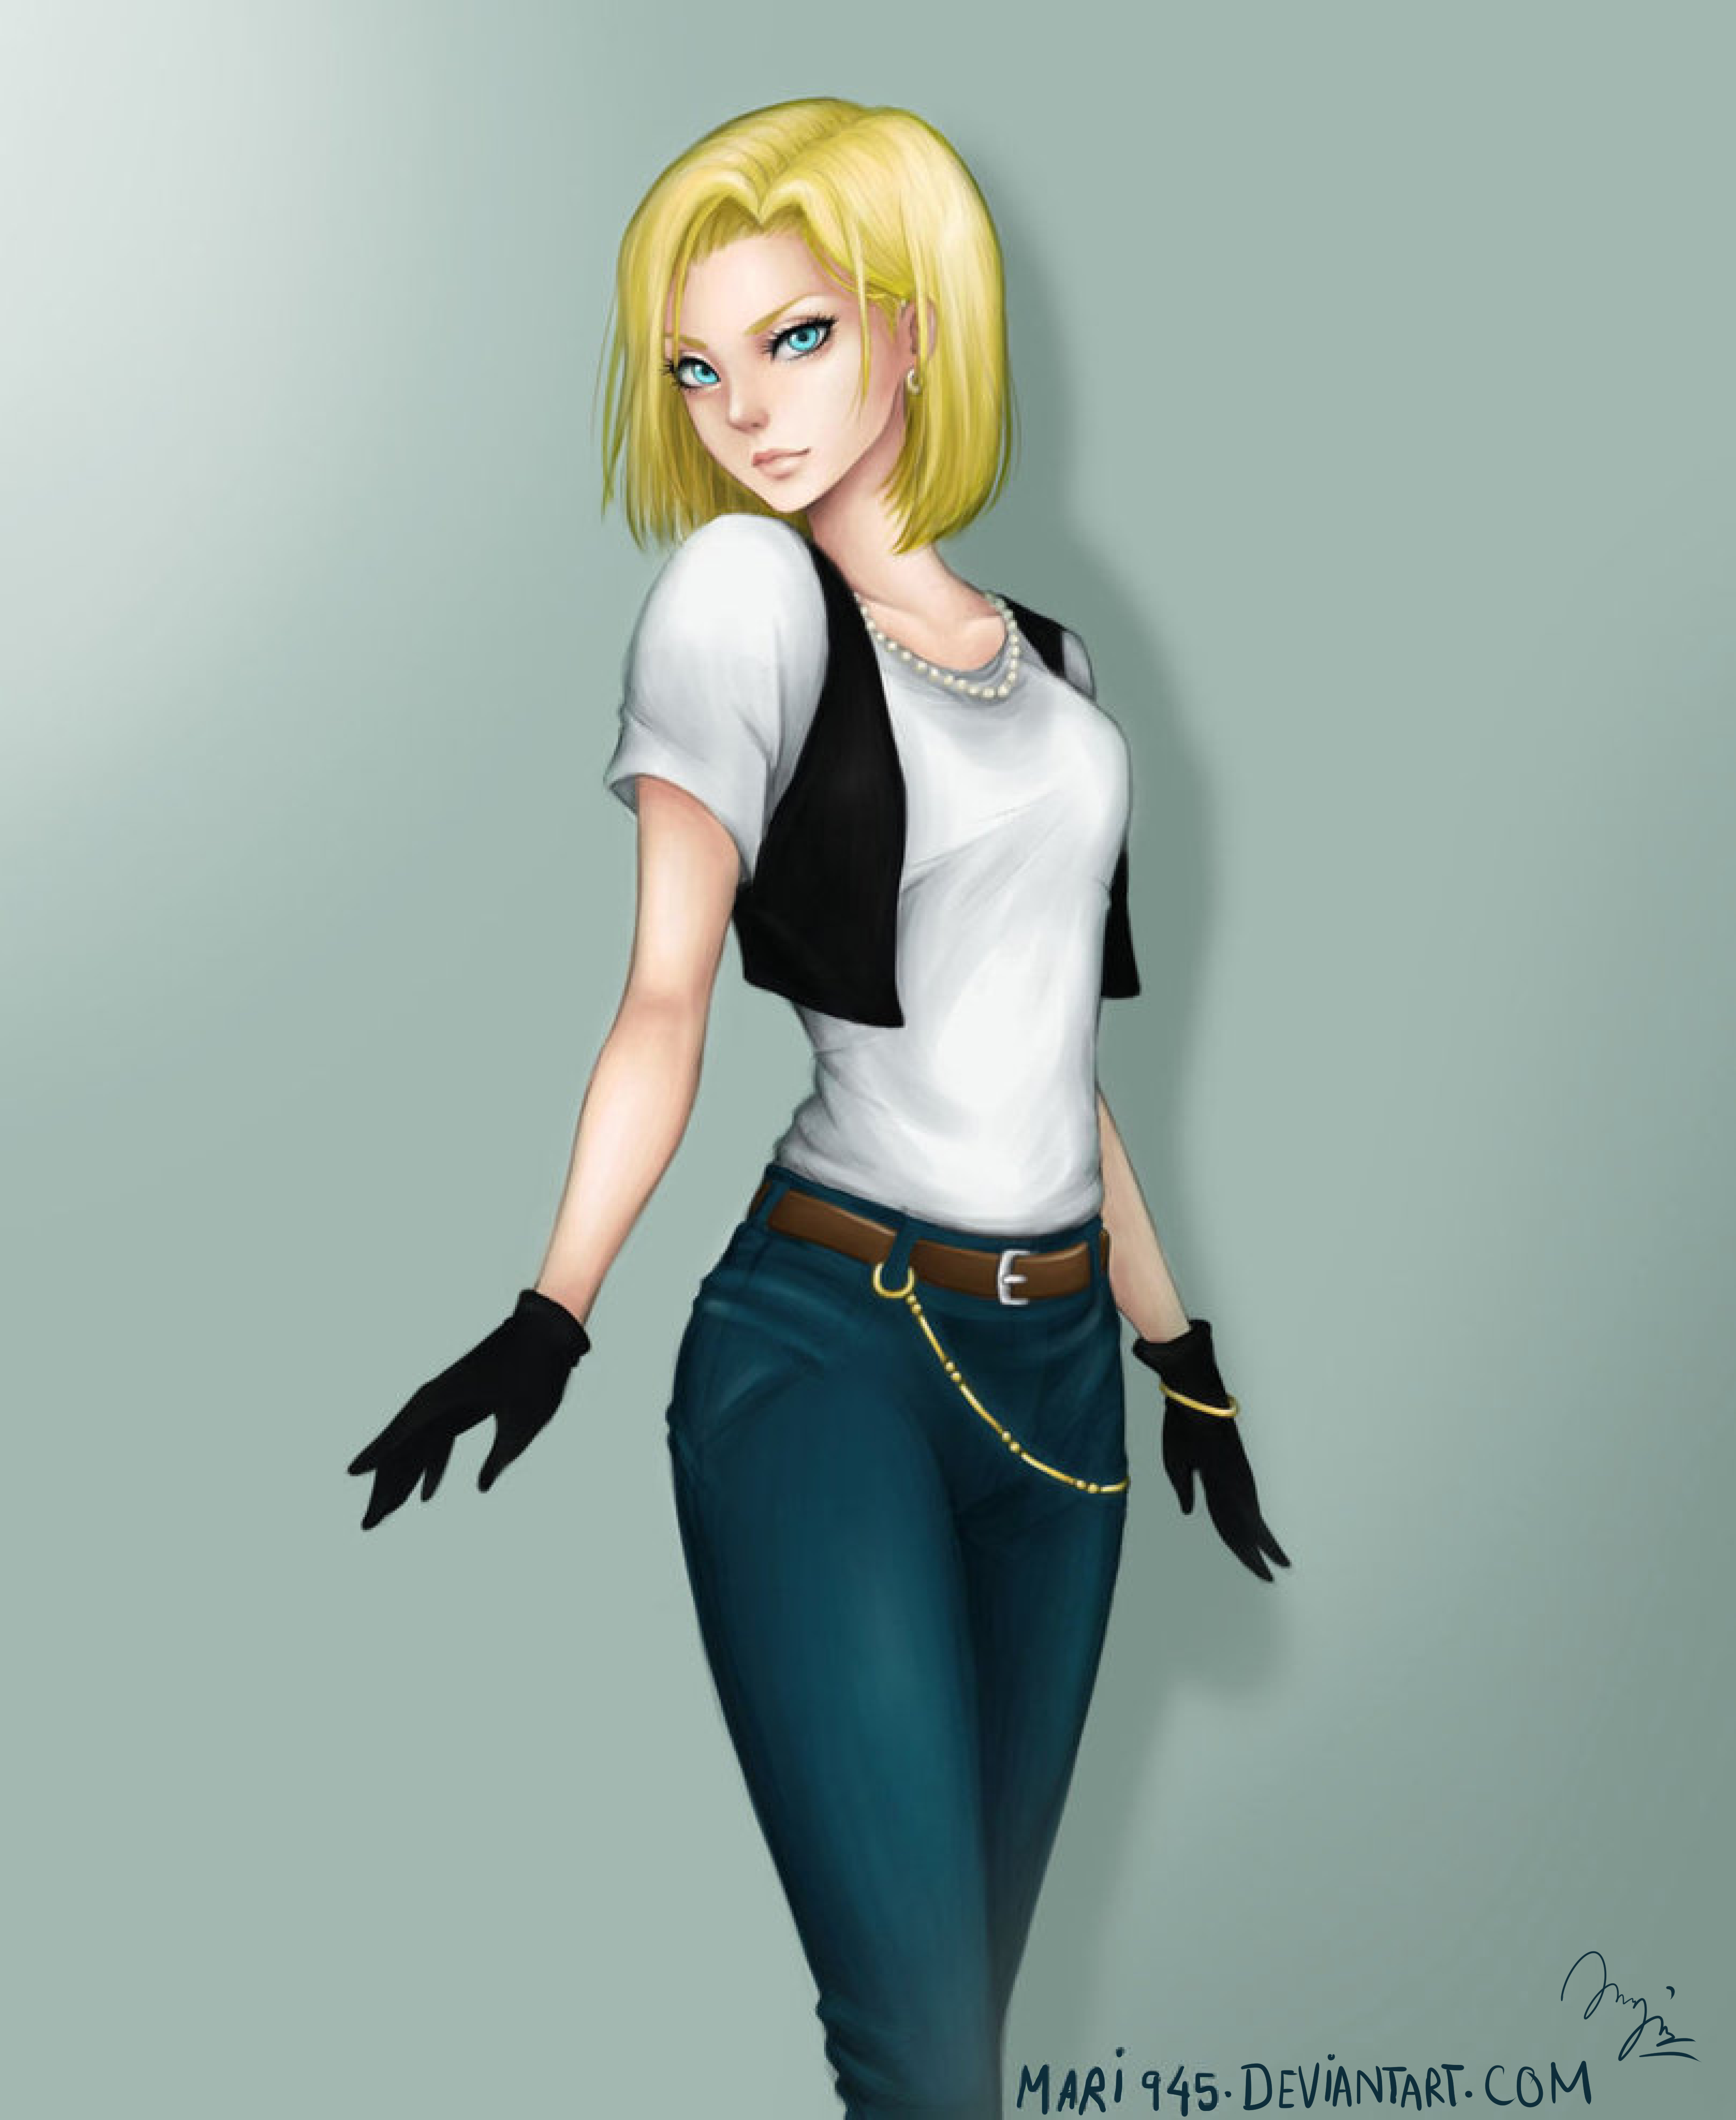 Android 18 Dragon Ball Z Zerochan Anime Image Board